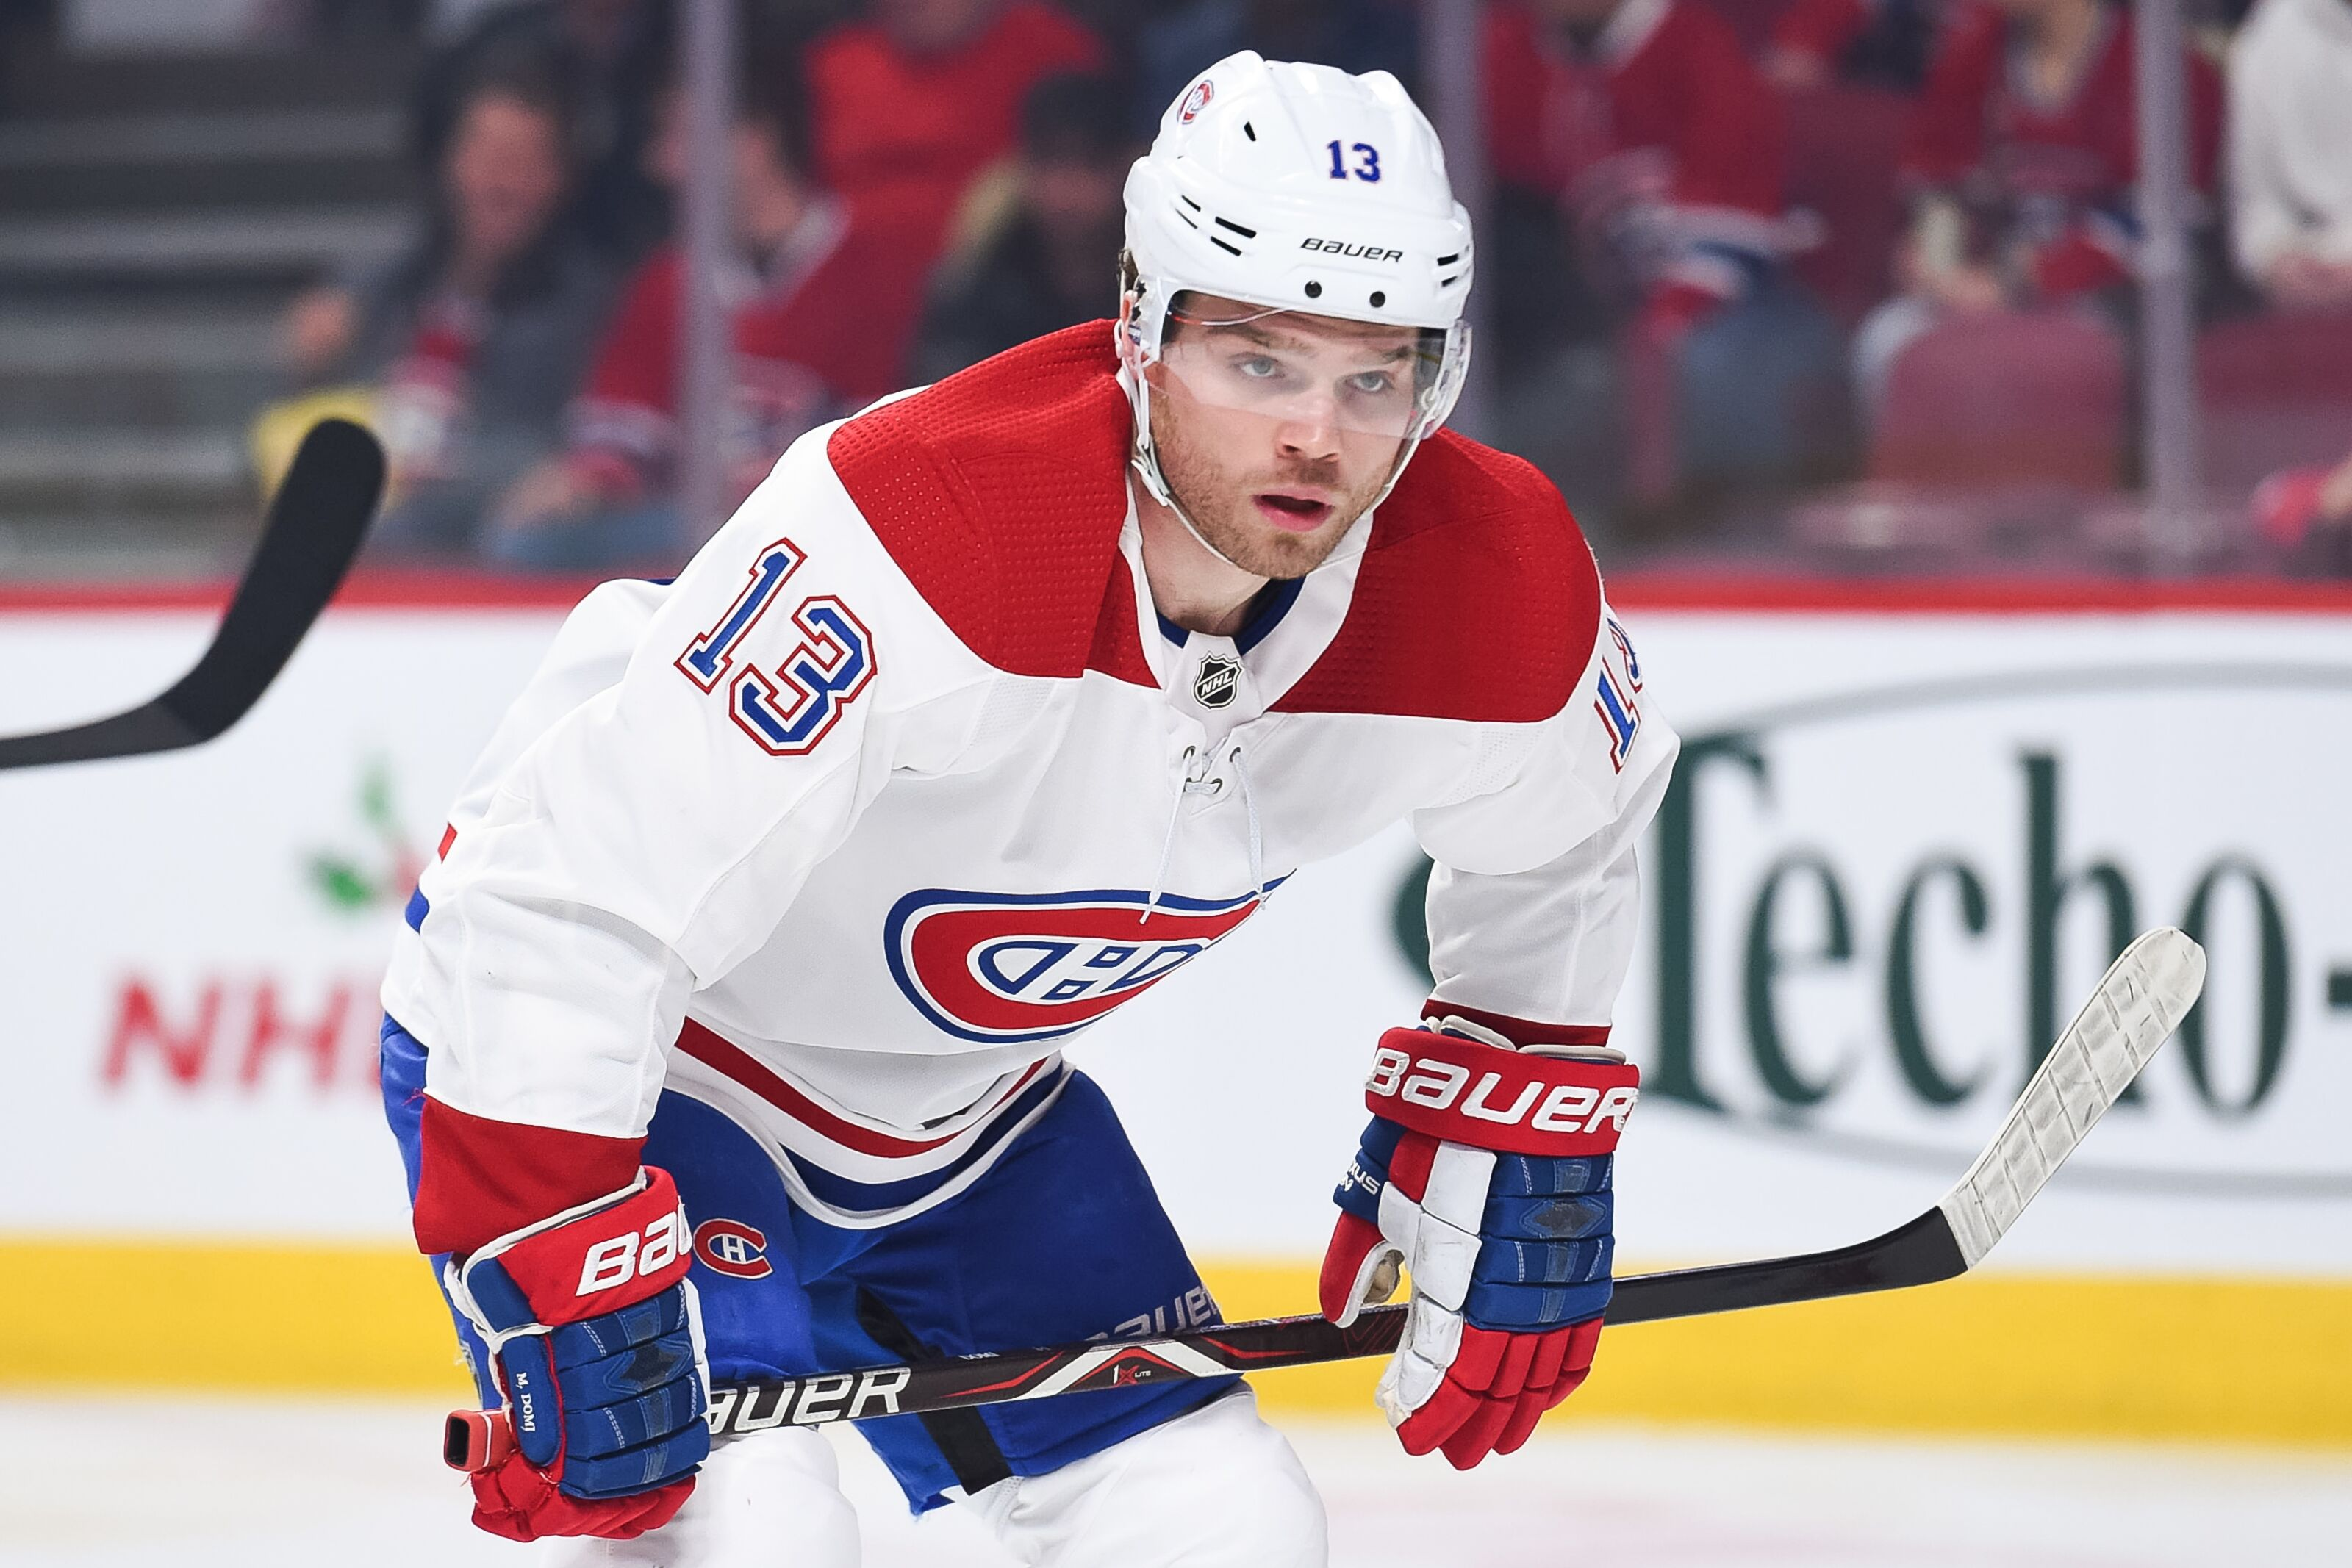 31eea0c66b2 A flashback night for Montreal Canadiens, Max Domi and Alex Galchenyuk